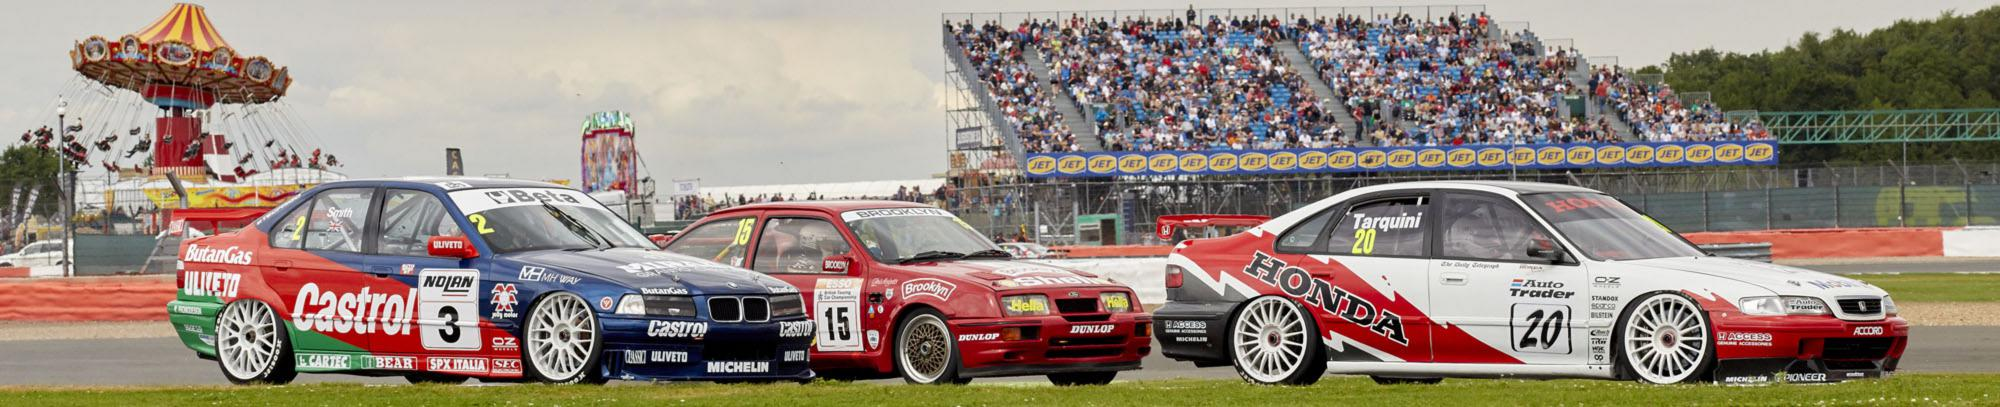 2017 Silverstone Classic Festival to celebrate the Ford Sierra RS500's 30th birthday in style